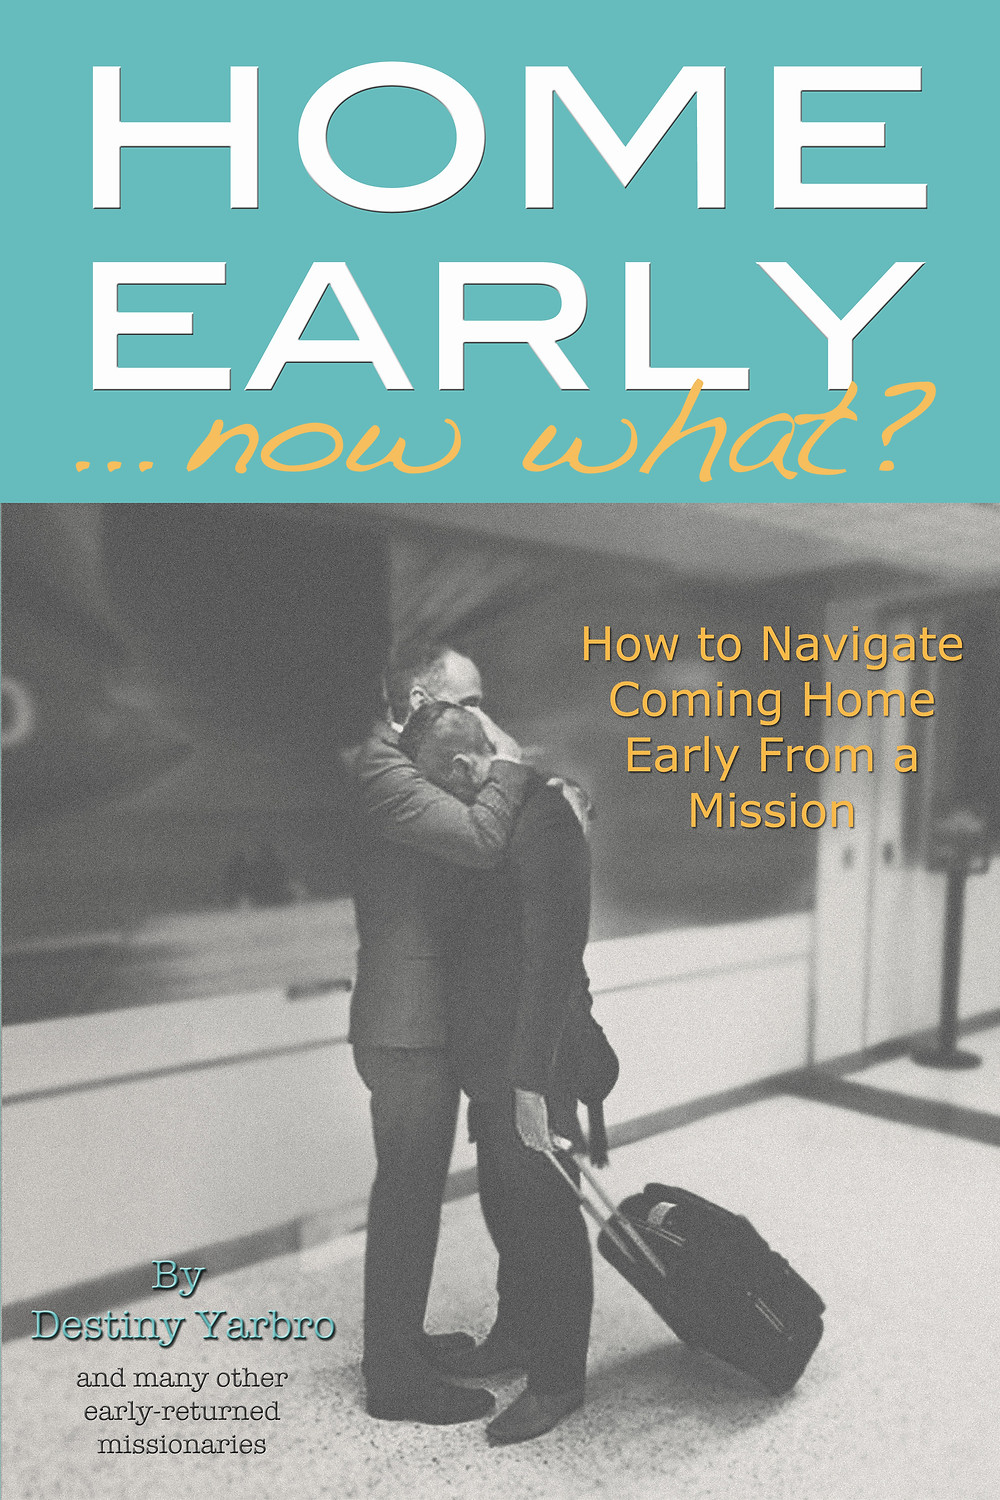 Book for early return missionaries called Home Early Now What available on Amazon. (Meant for early RMs, early missionaries, LDS missionaries, parents of early returned missionaries, mission presidents, stake presidents, bishops, and ward councils.)